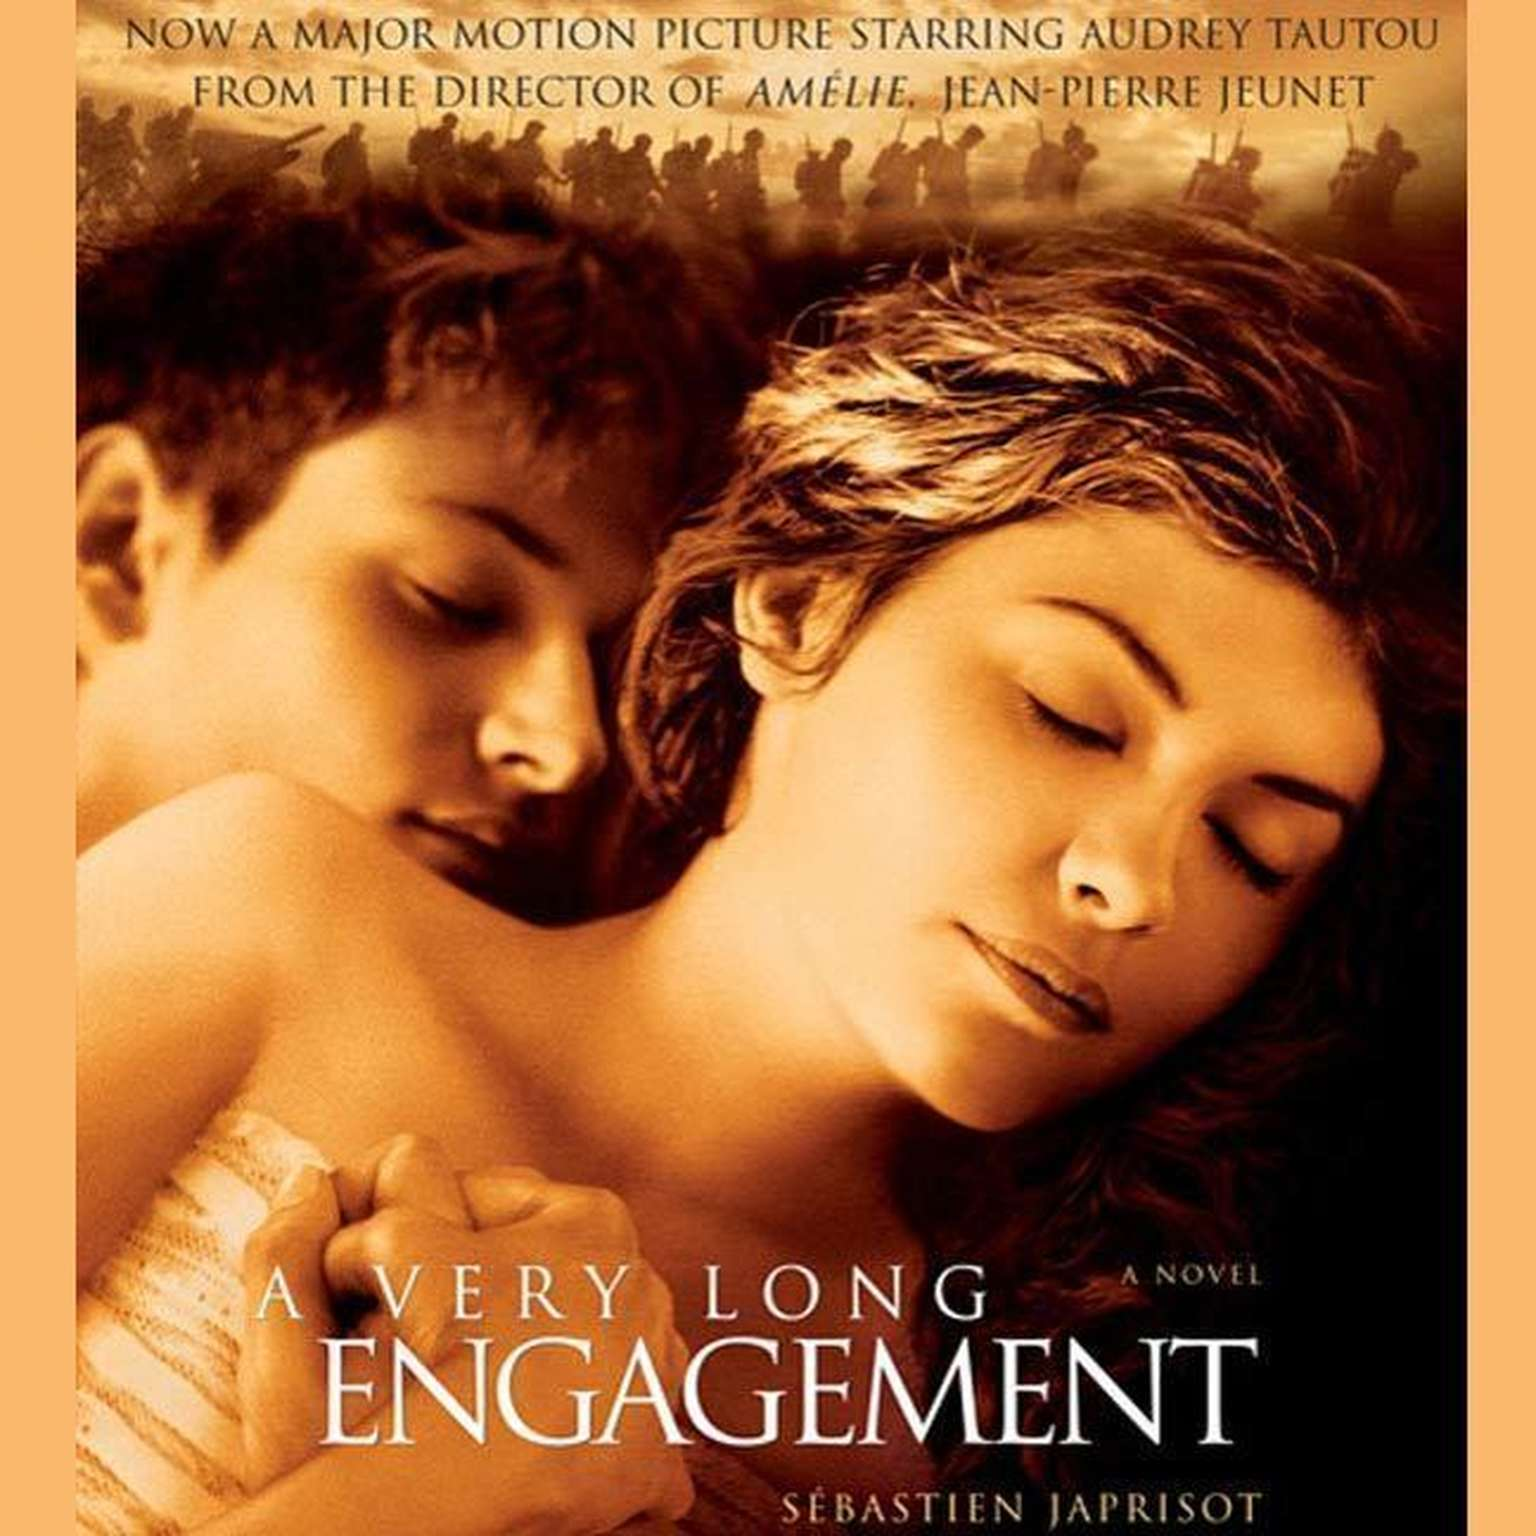 Printable A Very Long Engagement: A Novel Audiobook Cover Art